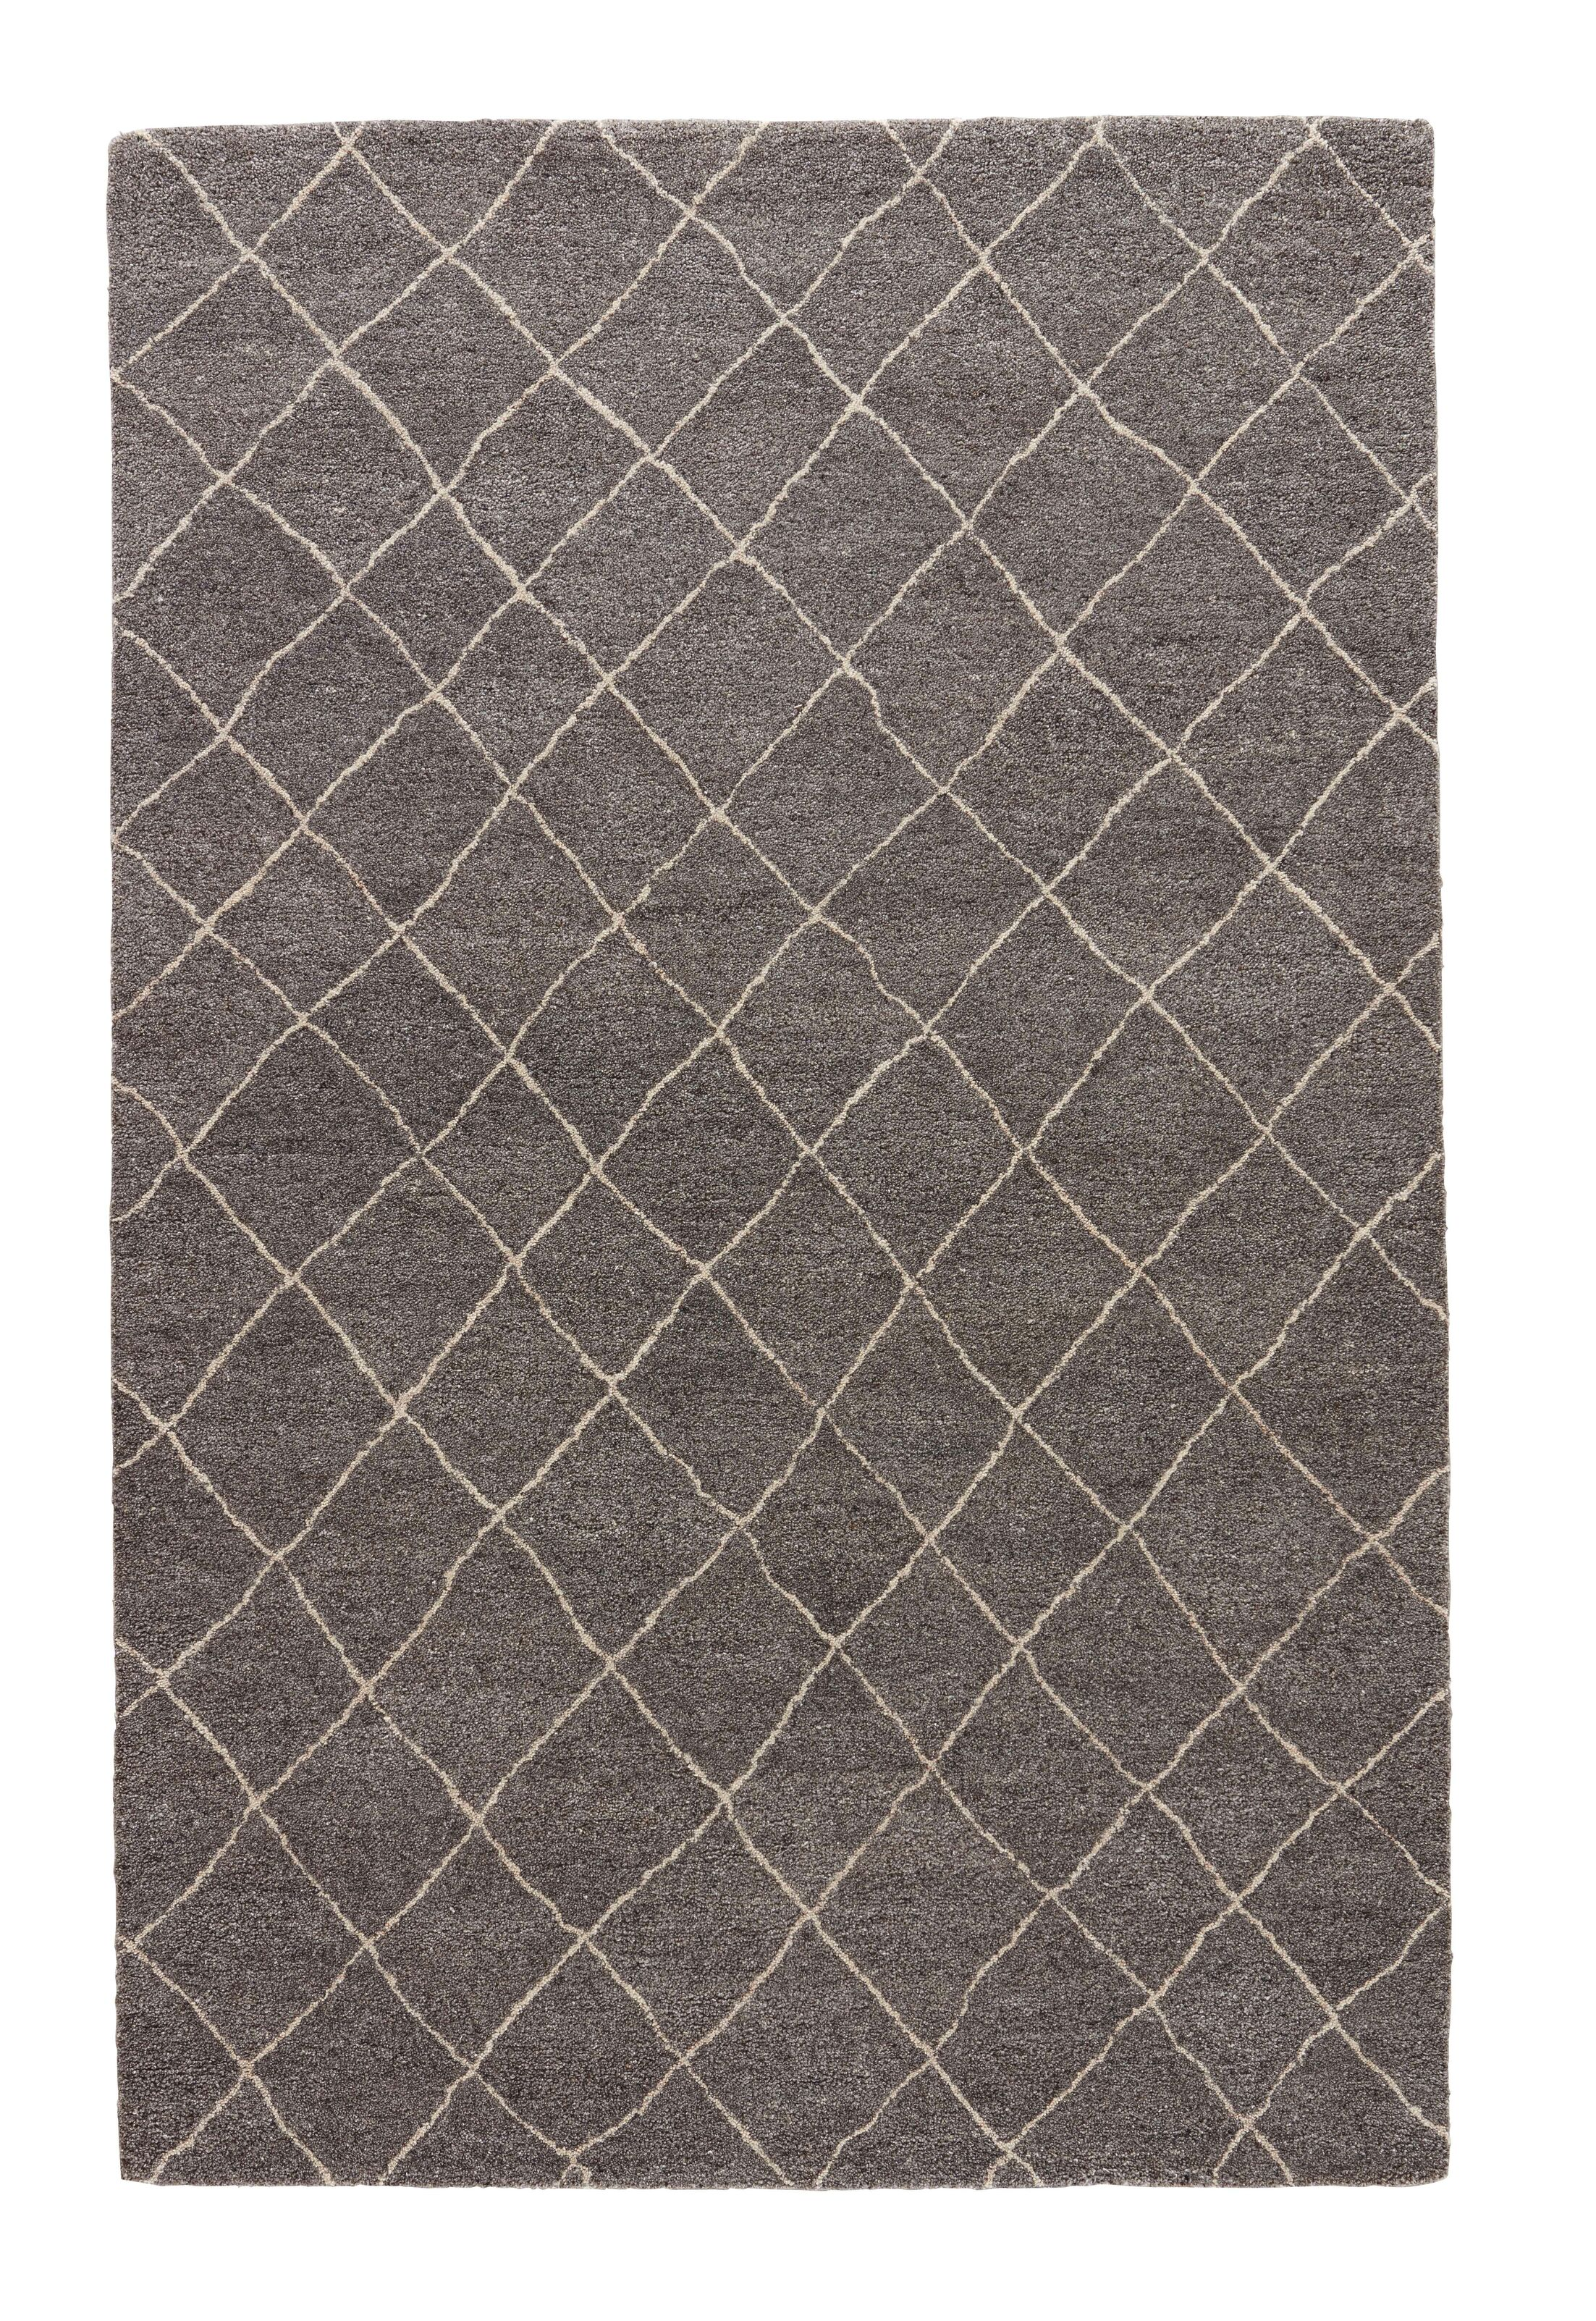 Reyansh Hand-Woven Wool Gray/Ivory Rug Rug Size: Rectangle 2' x 3'